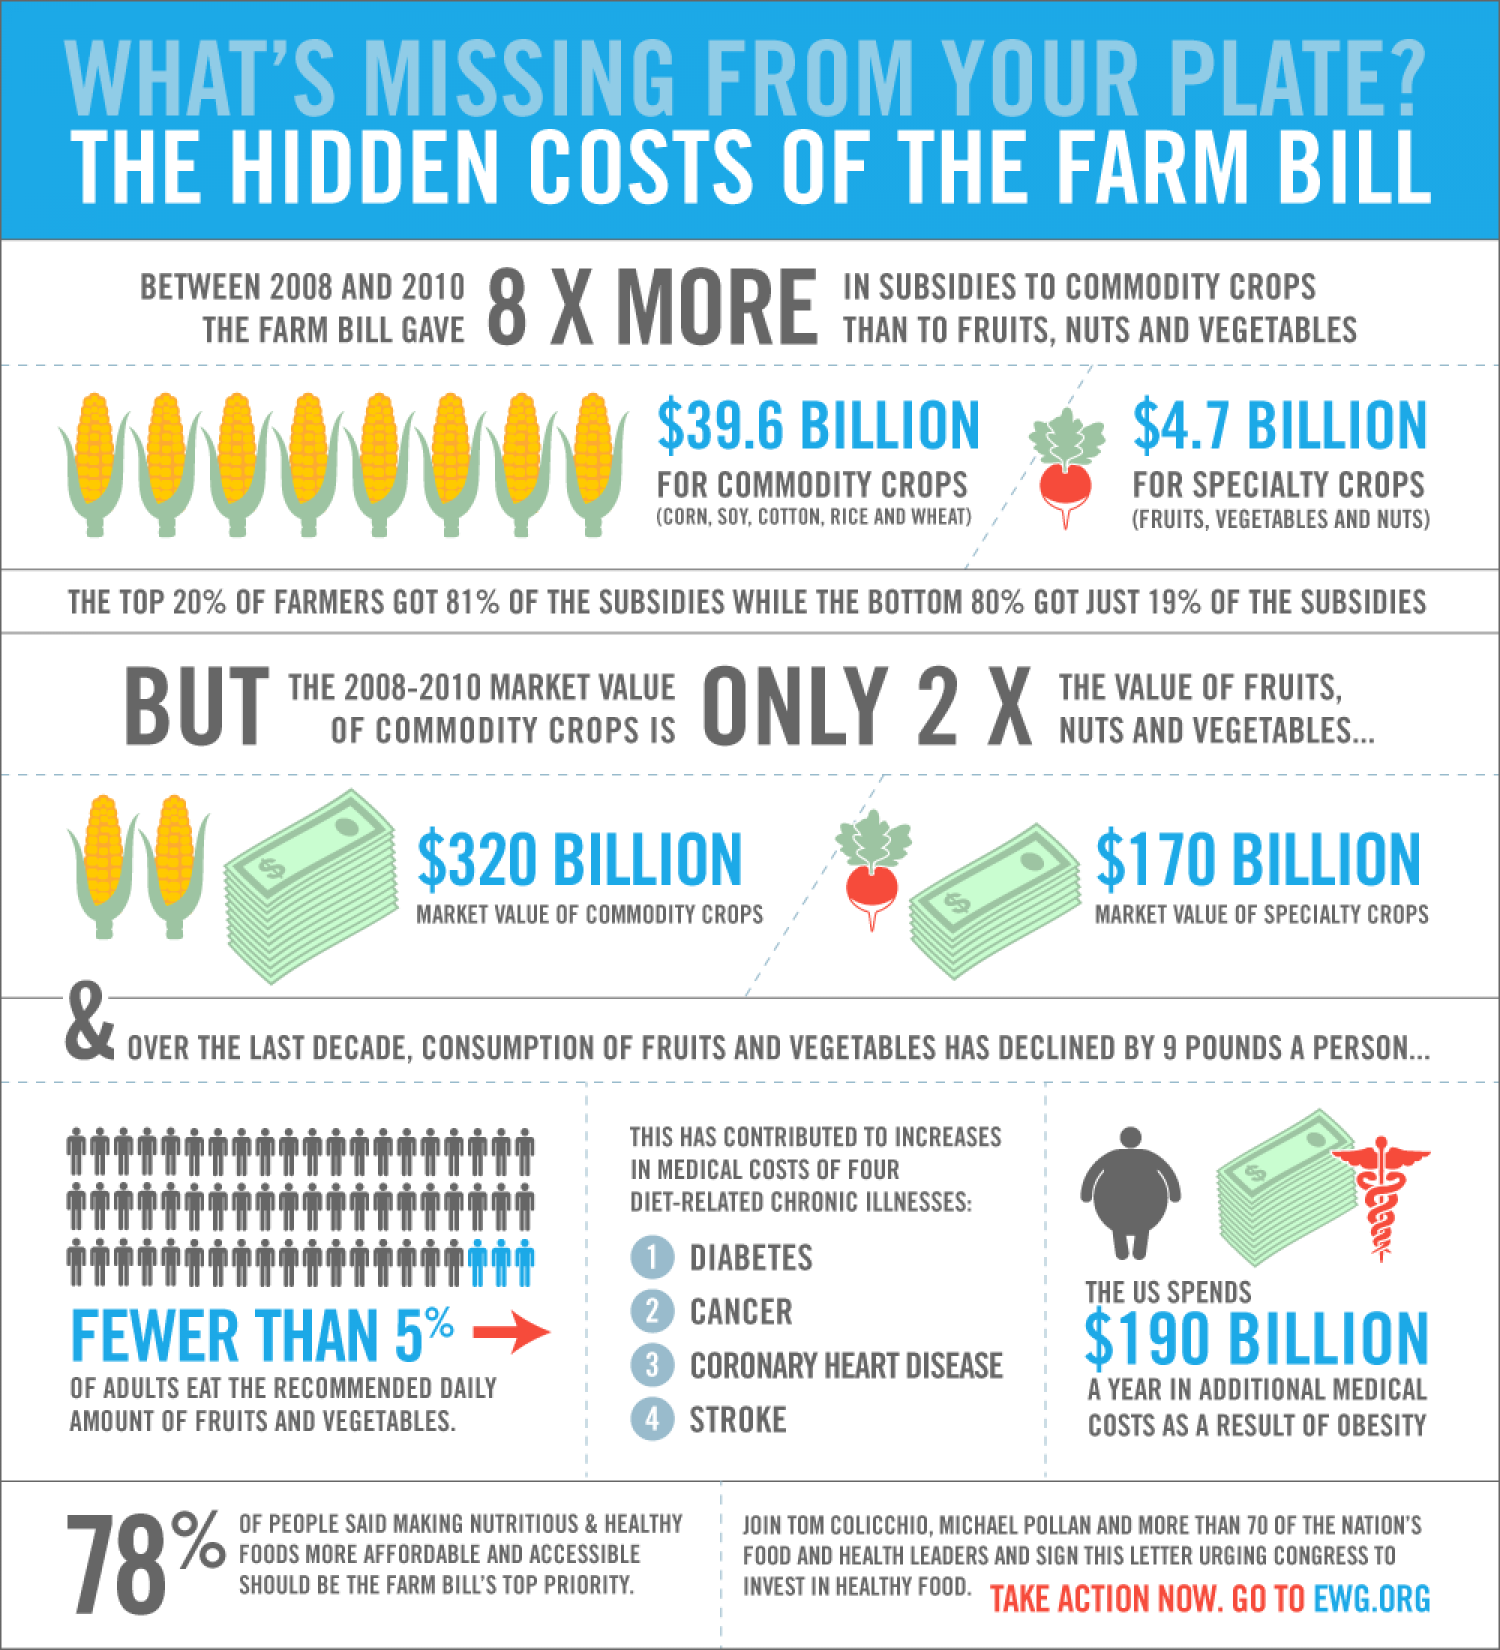 The Hidden Costs of the Farm Bill Infographic